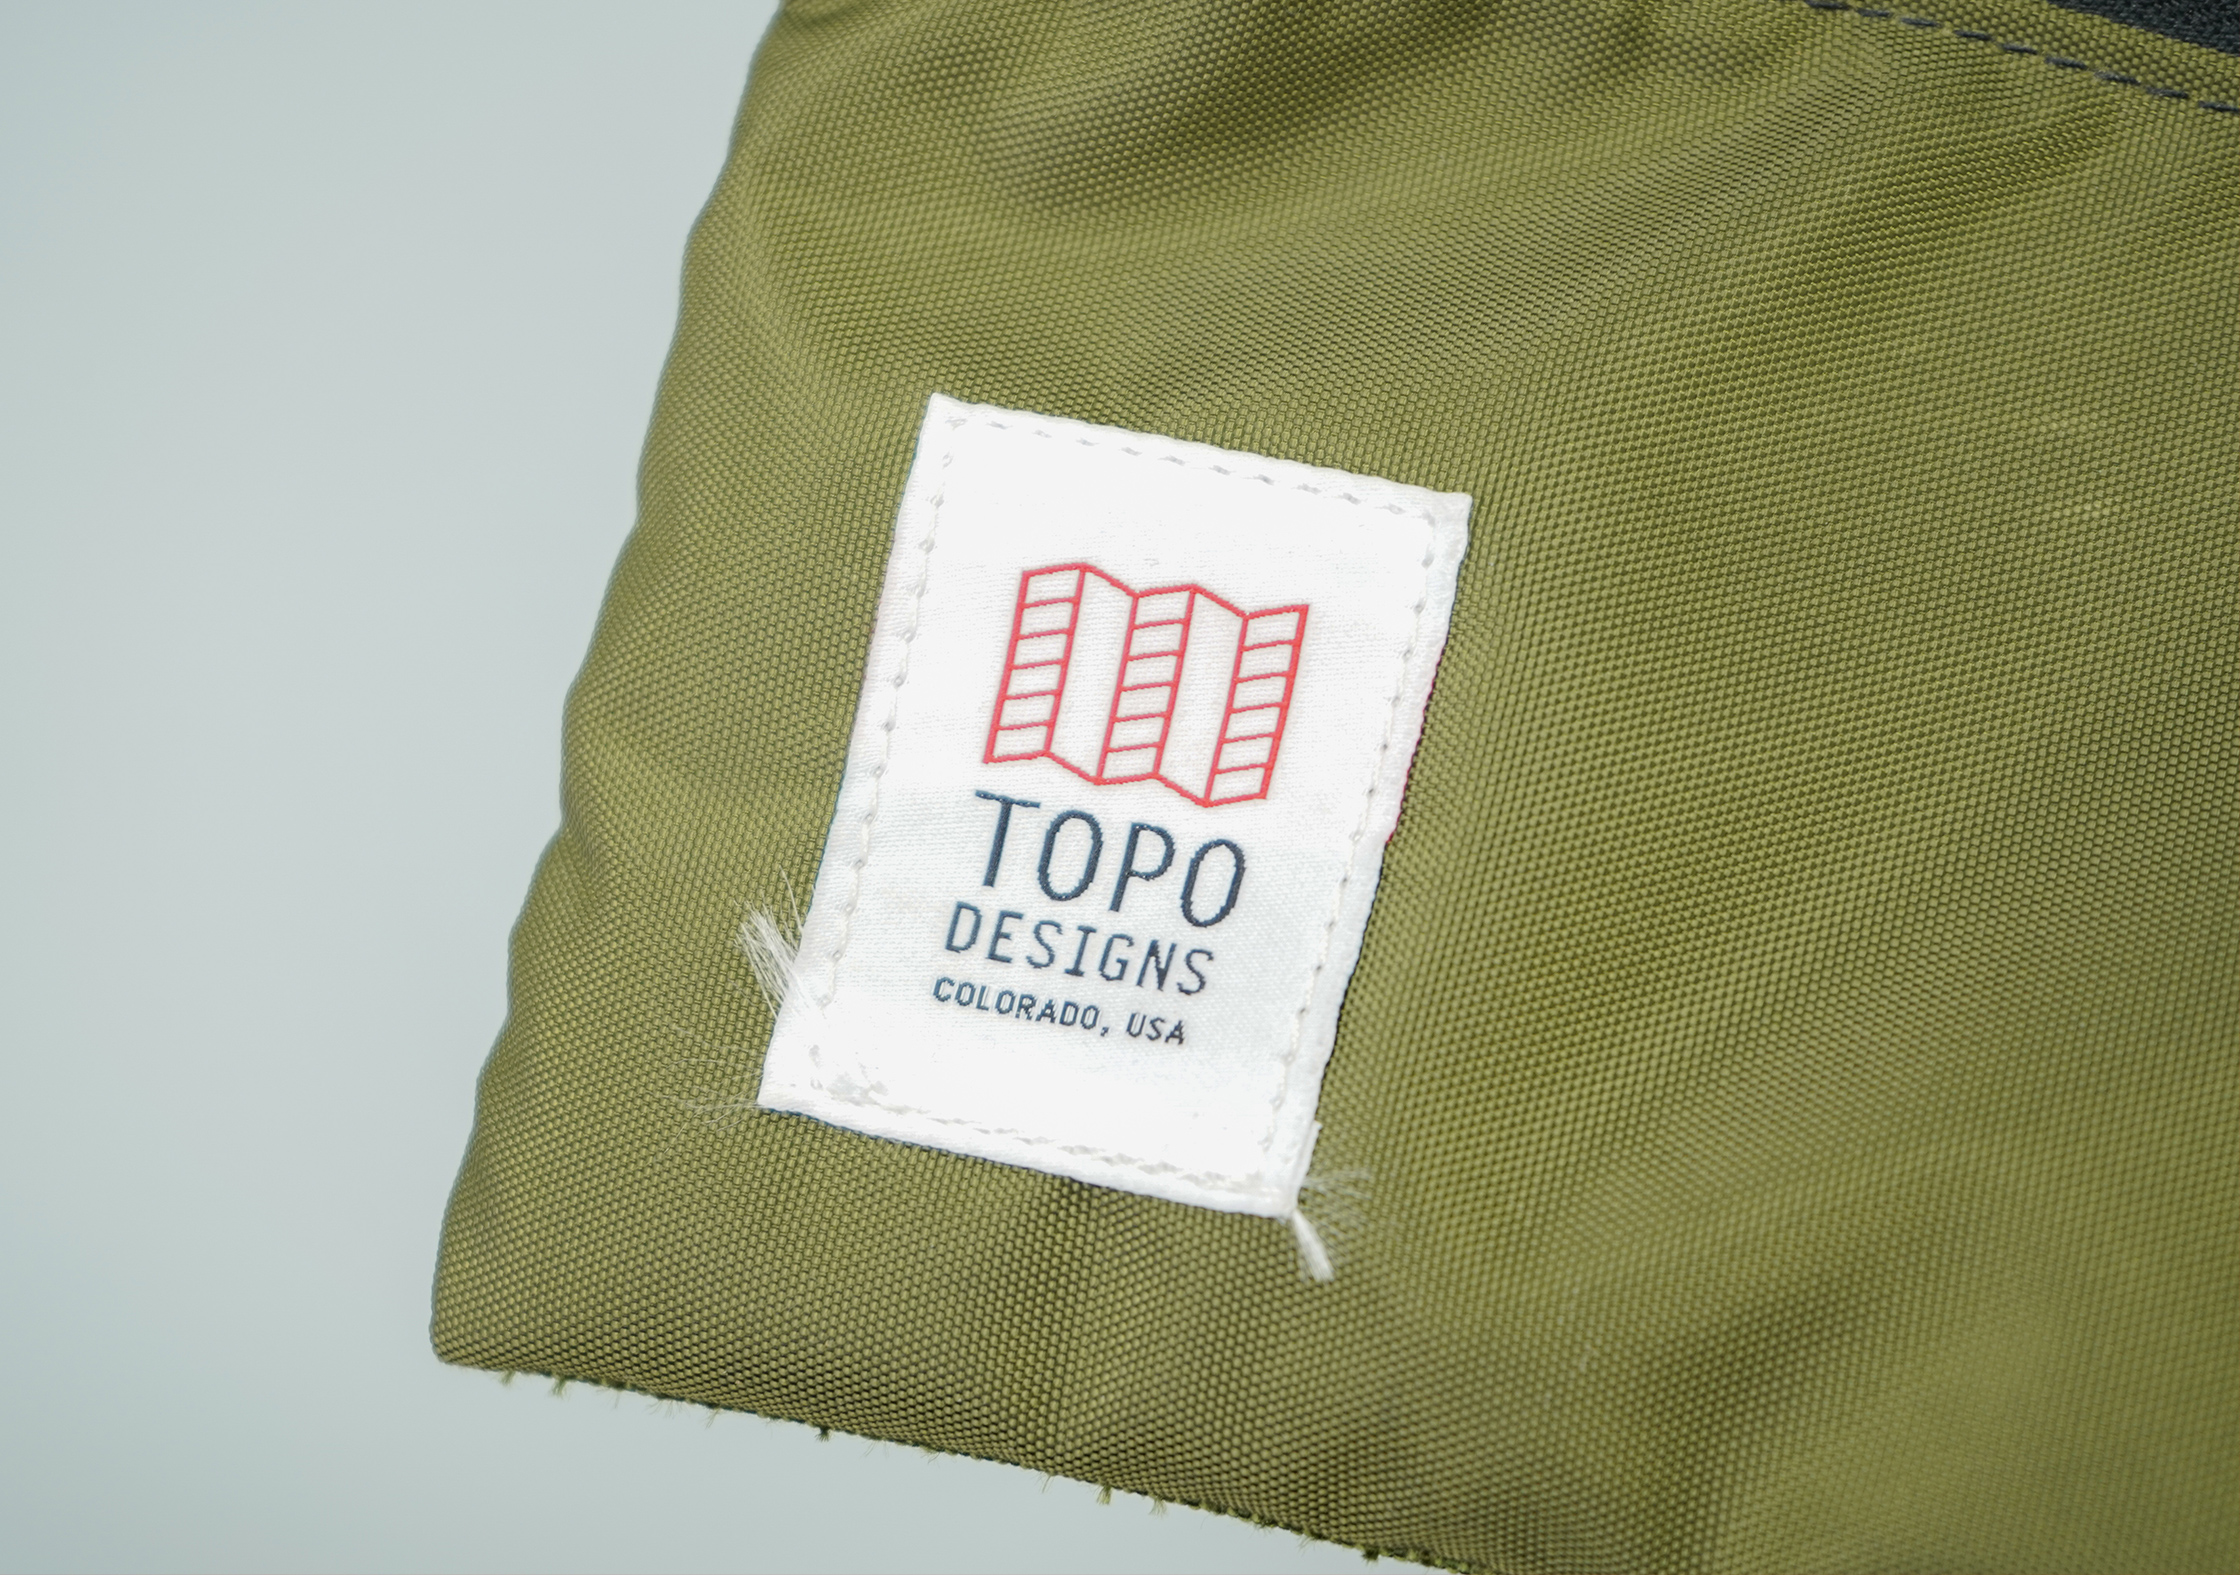 Topo Accessory Bags Logo Fraying